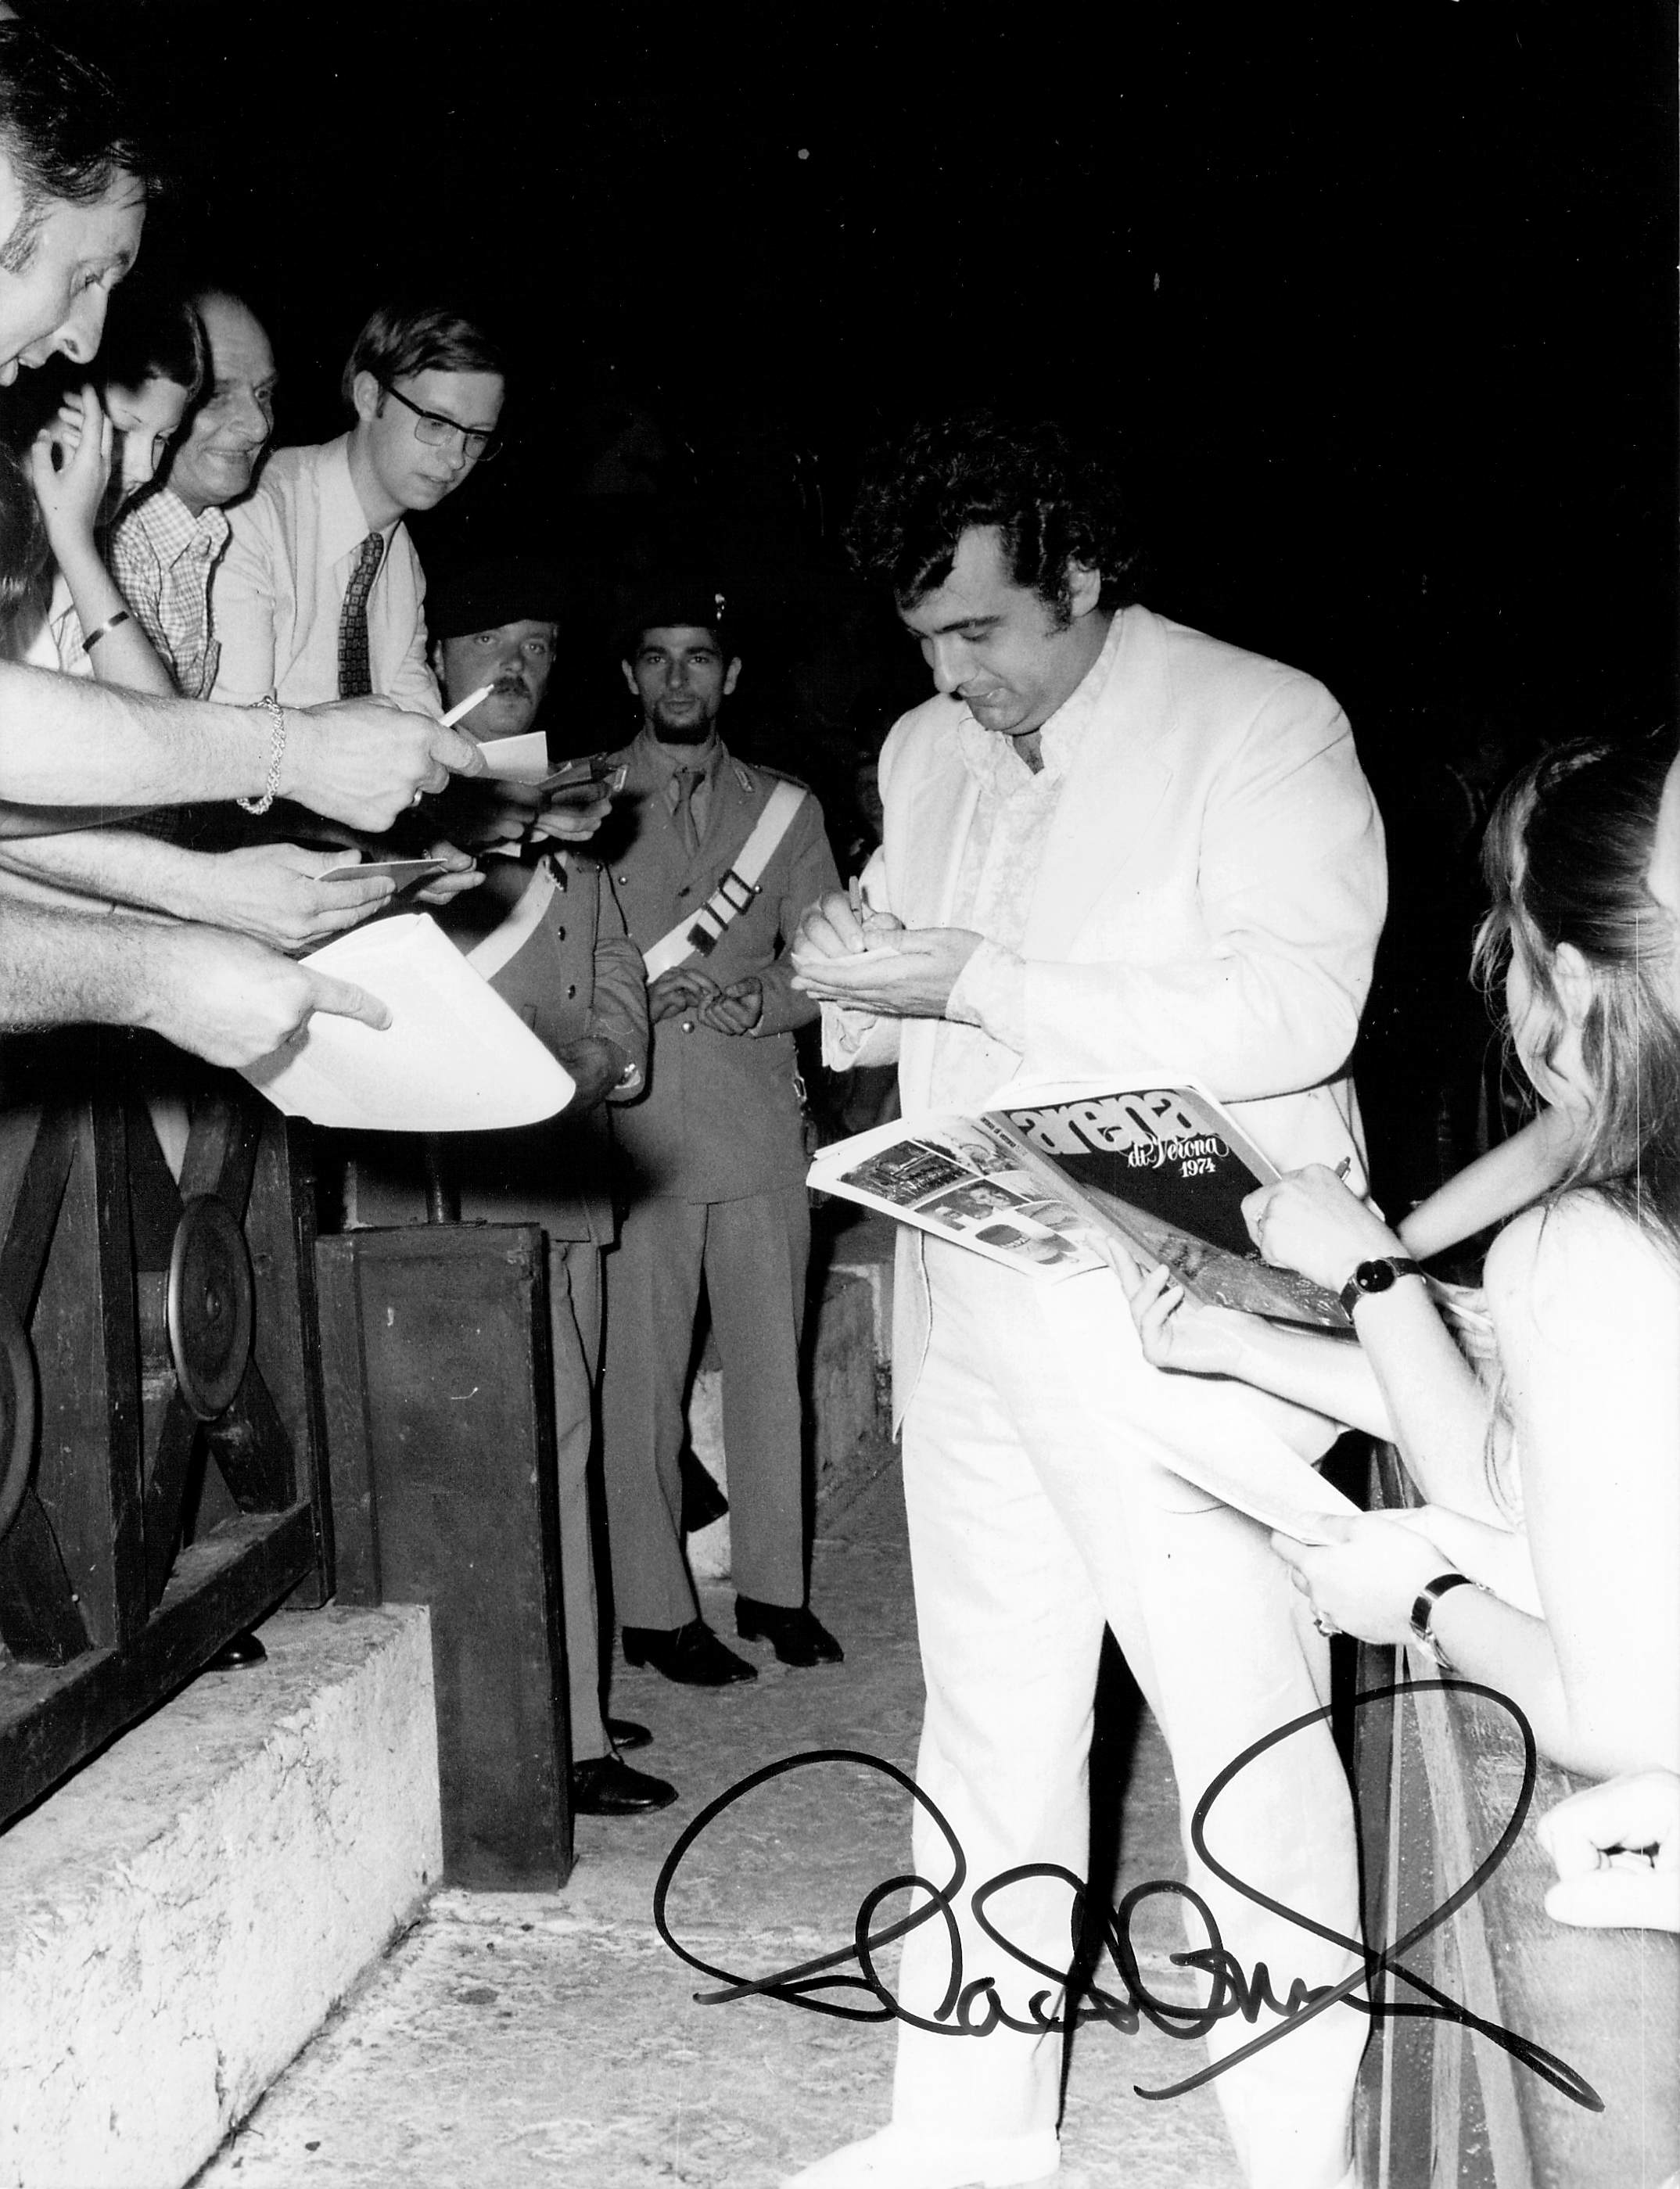 Placido Domingo signing autographs